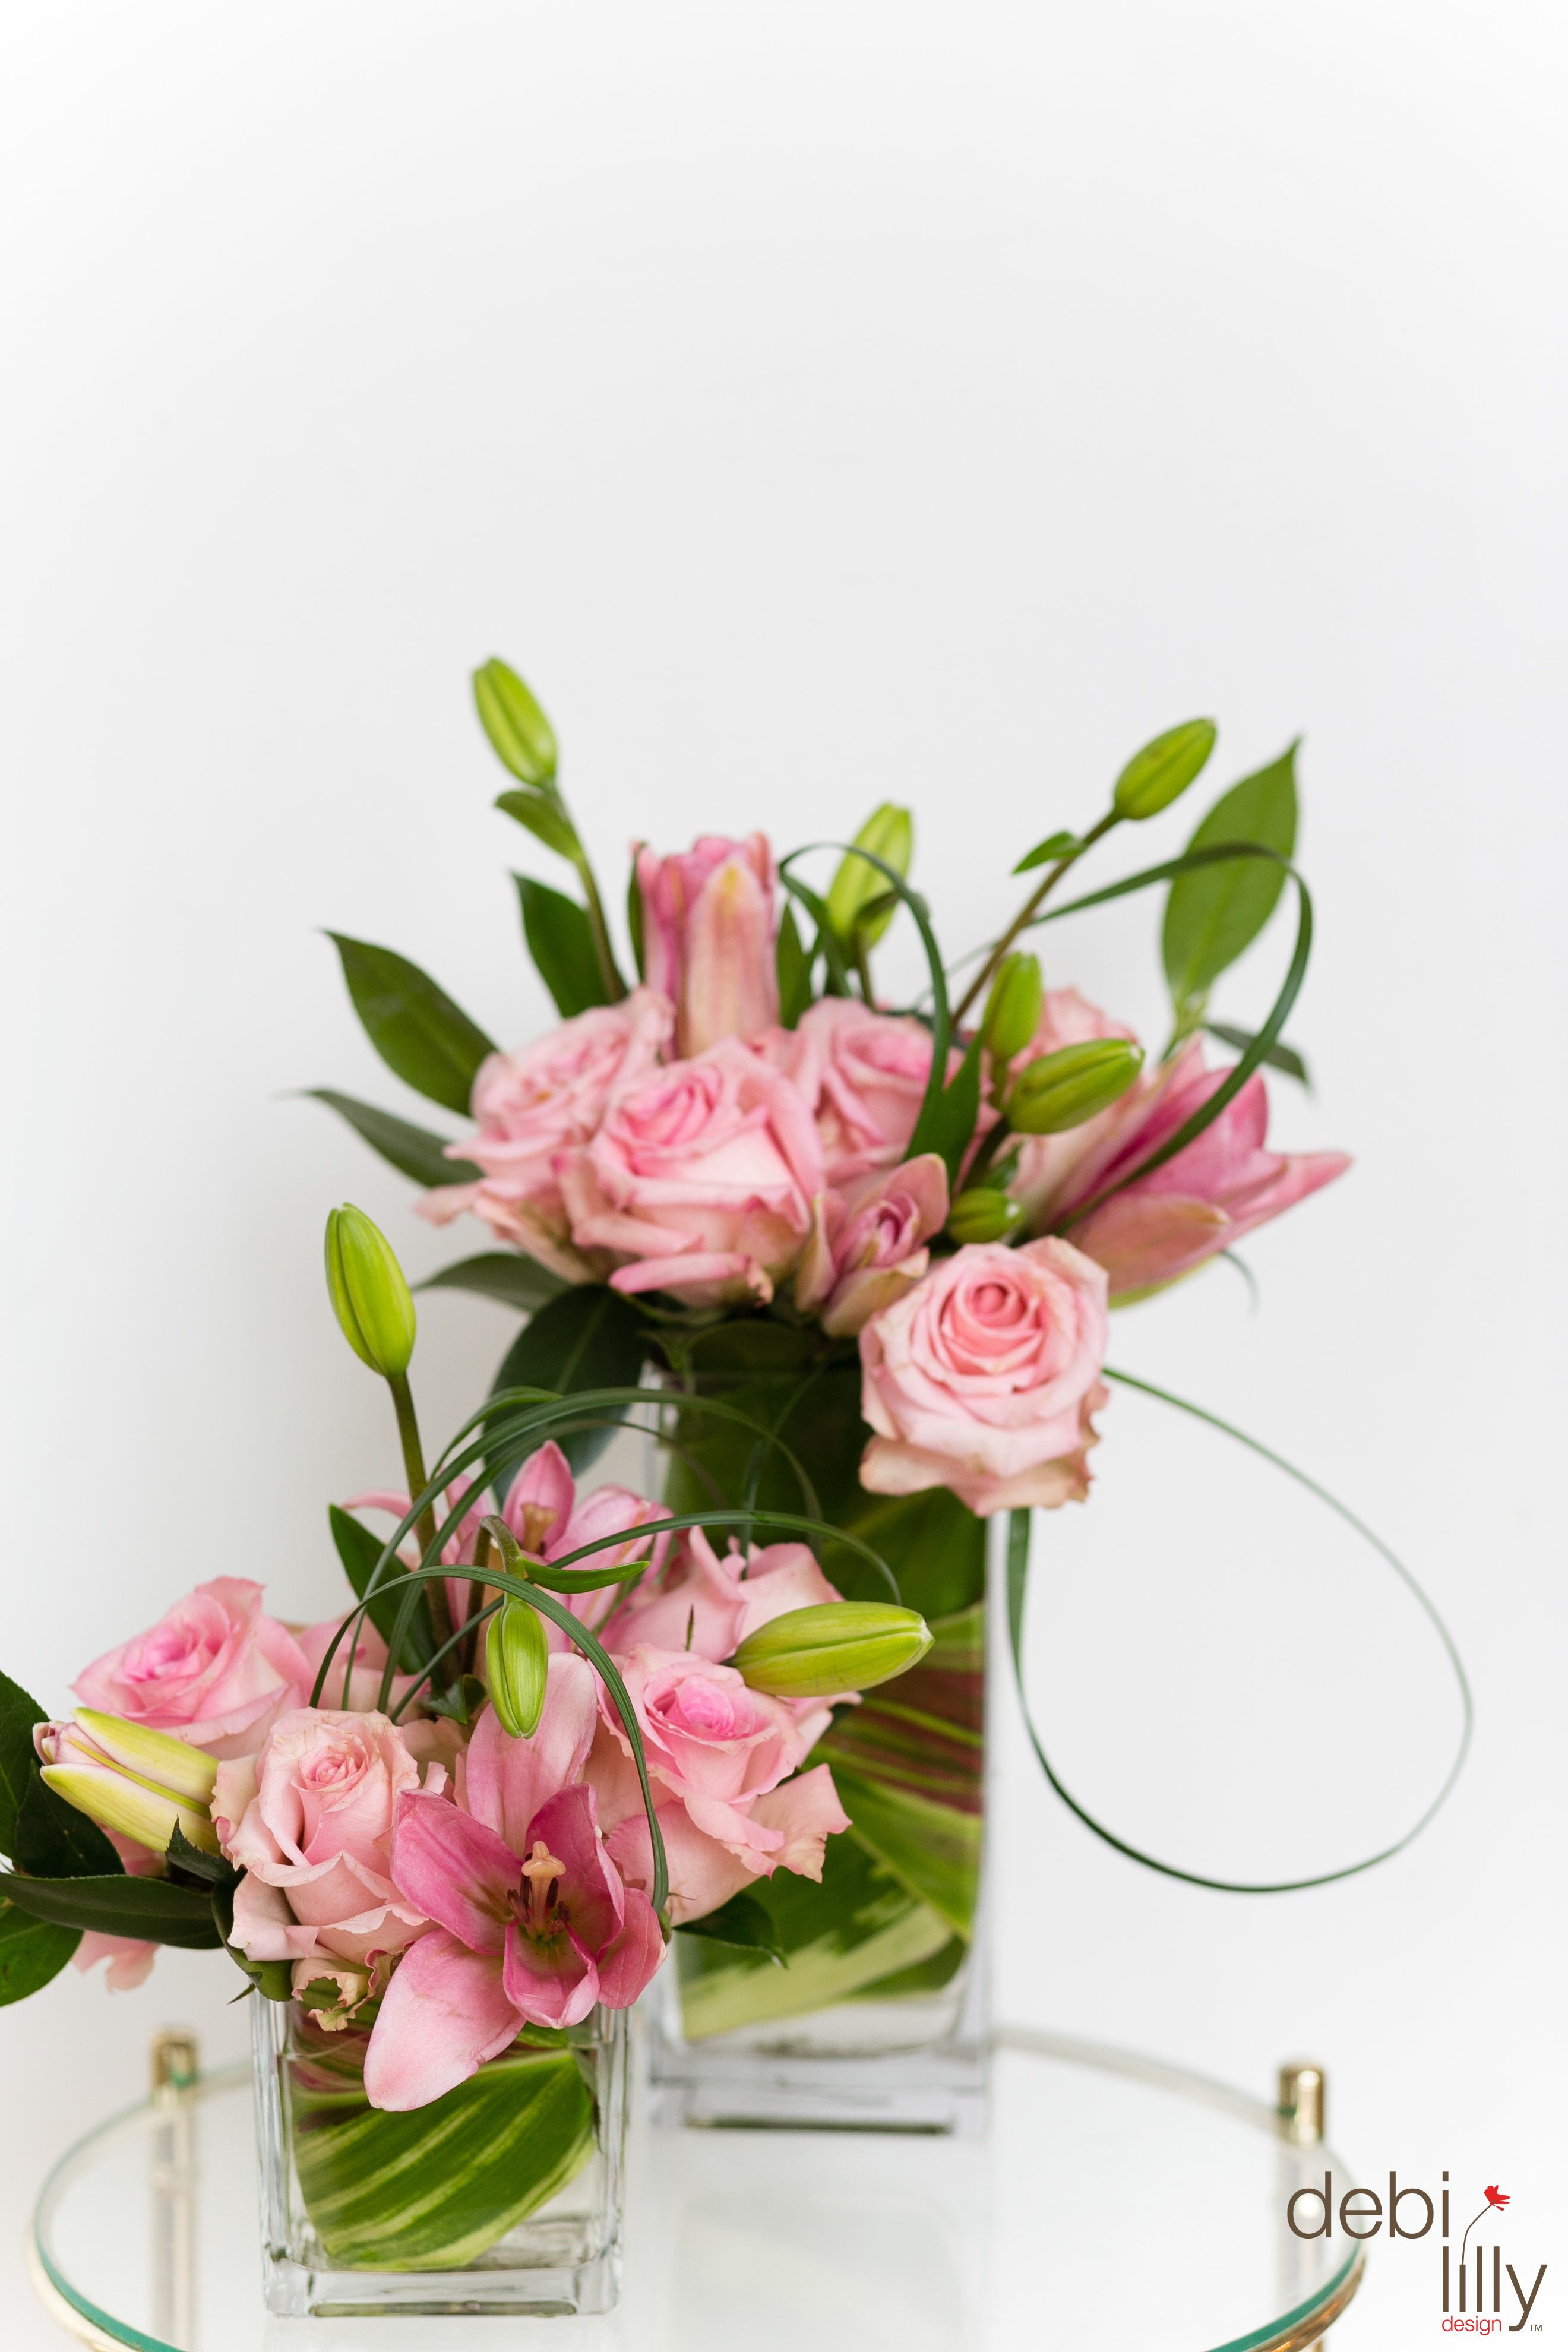 Pink Pink And More Pink These Pink Flowers In A Debi Lilly Design